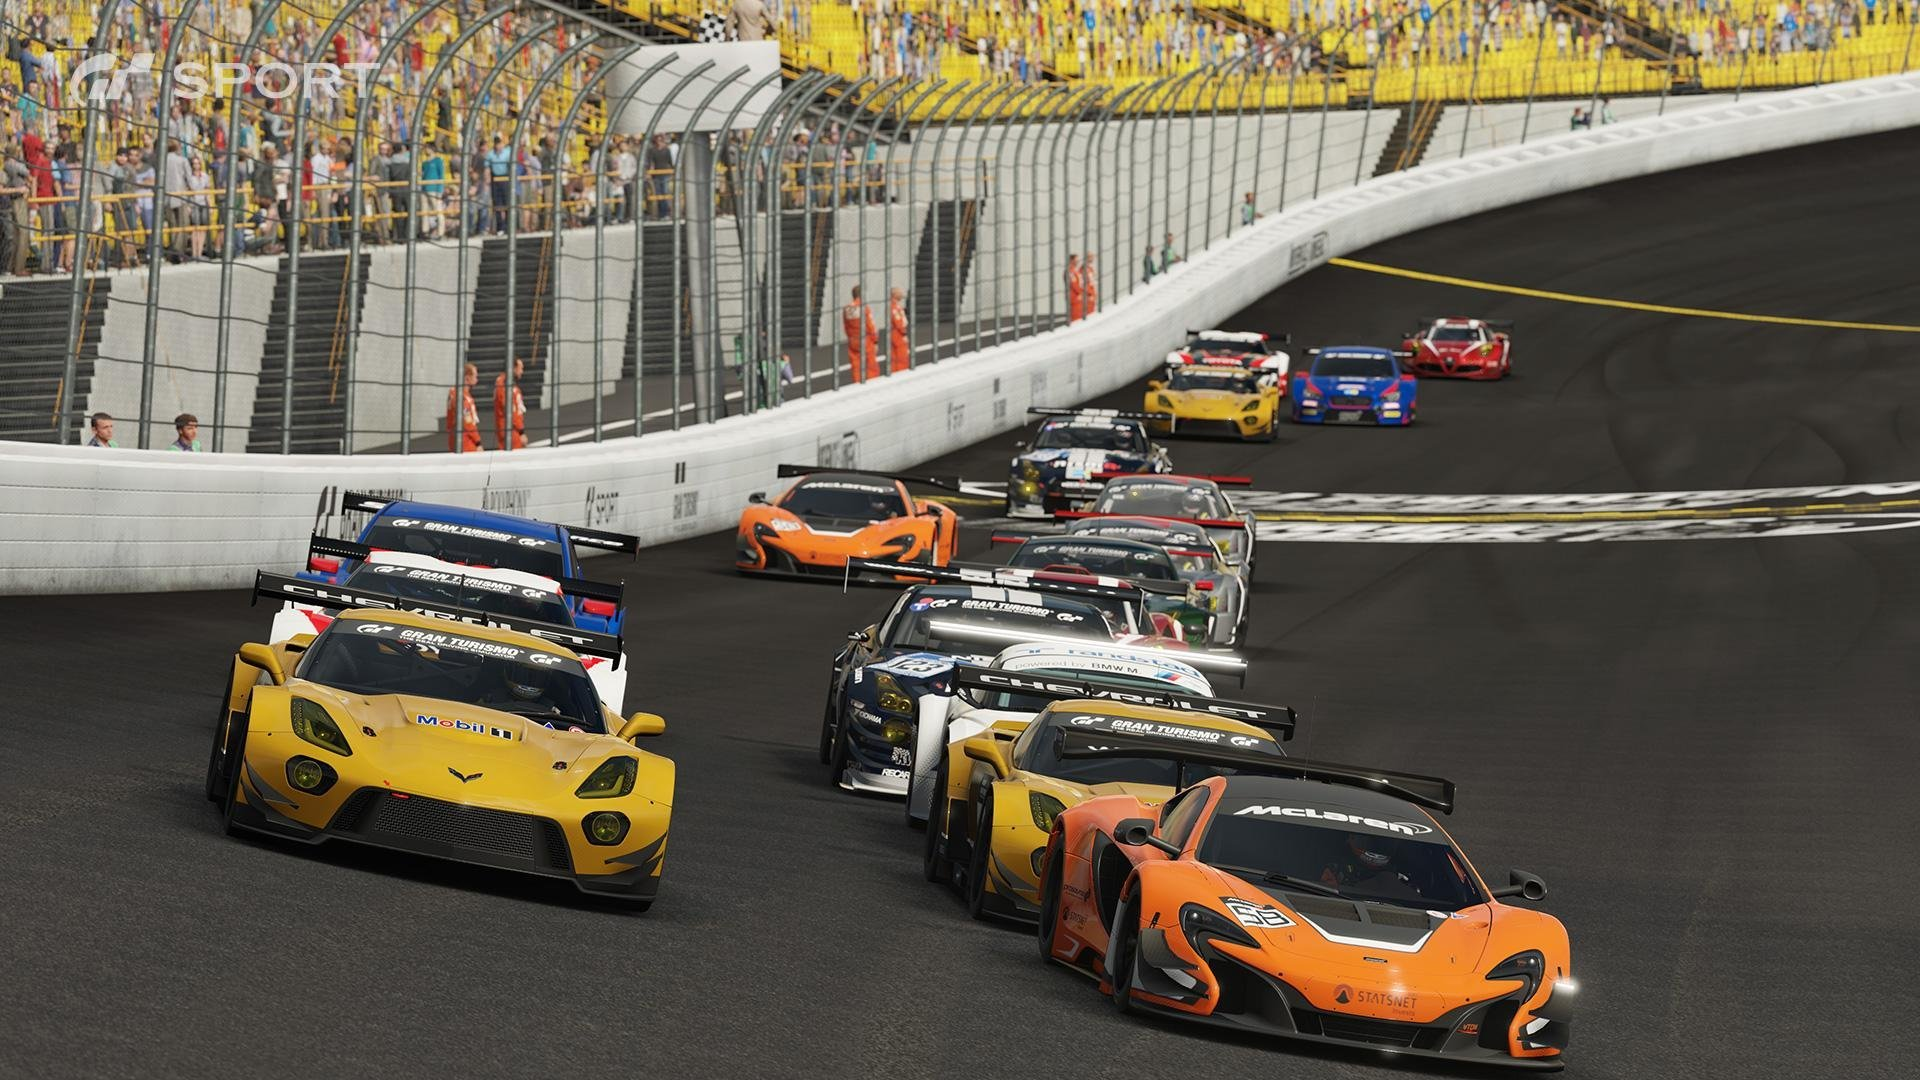 Gran turismo sport will be introducing even more modes there will still be an arcade mode that allows players to race against ai against their friends and